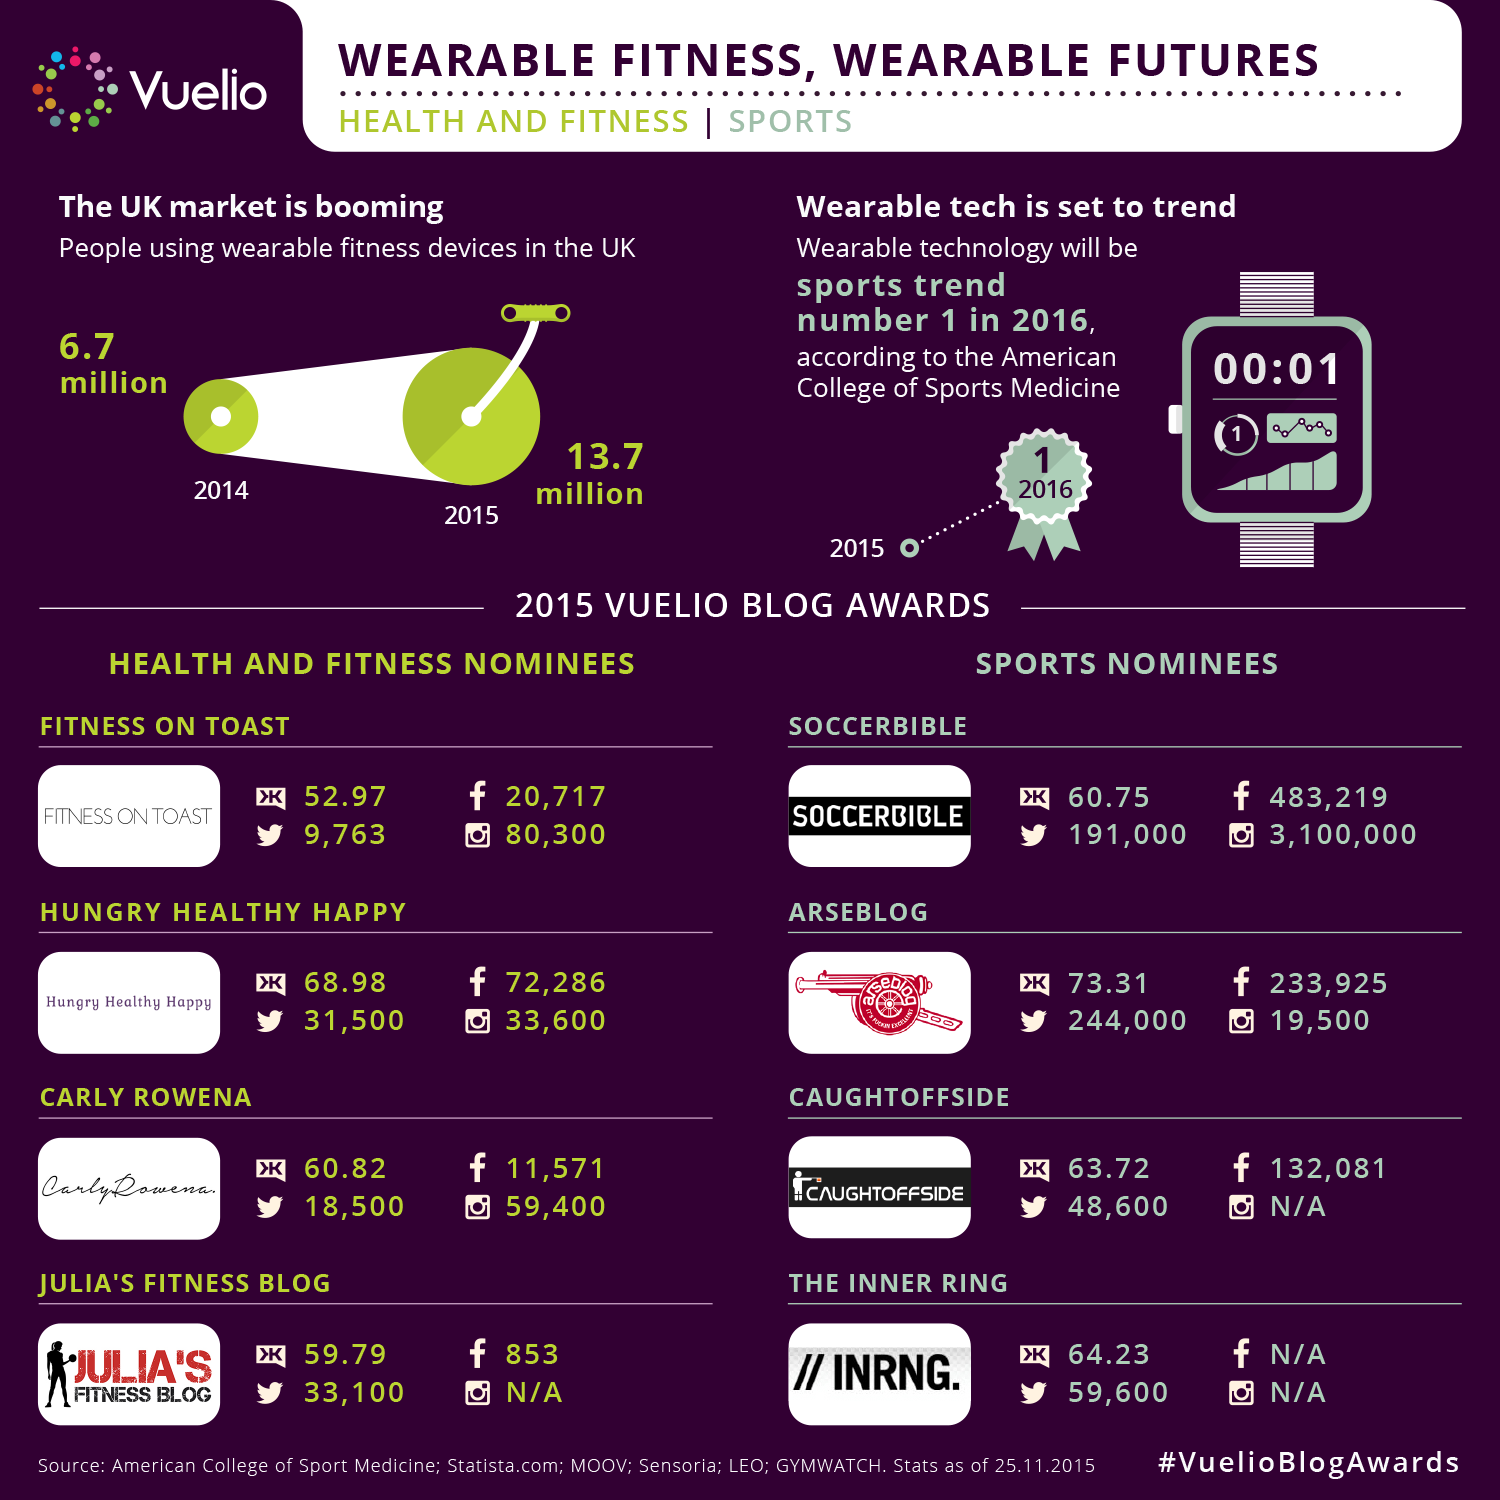 Vuelio Blog Awards - Sports and Health and Fitness